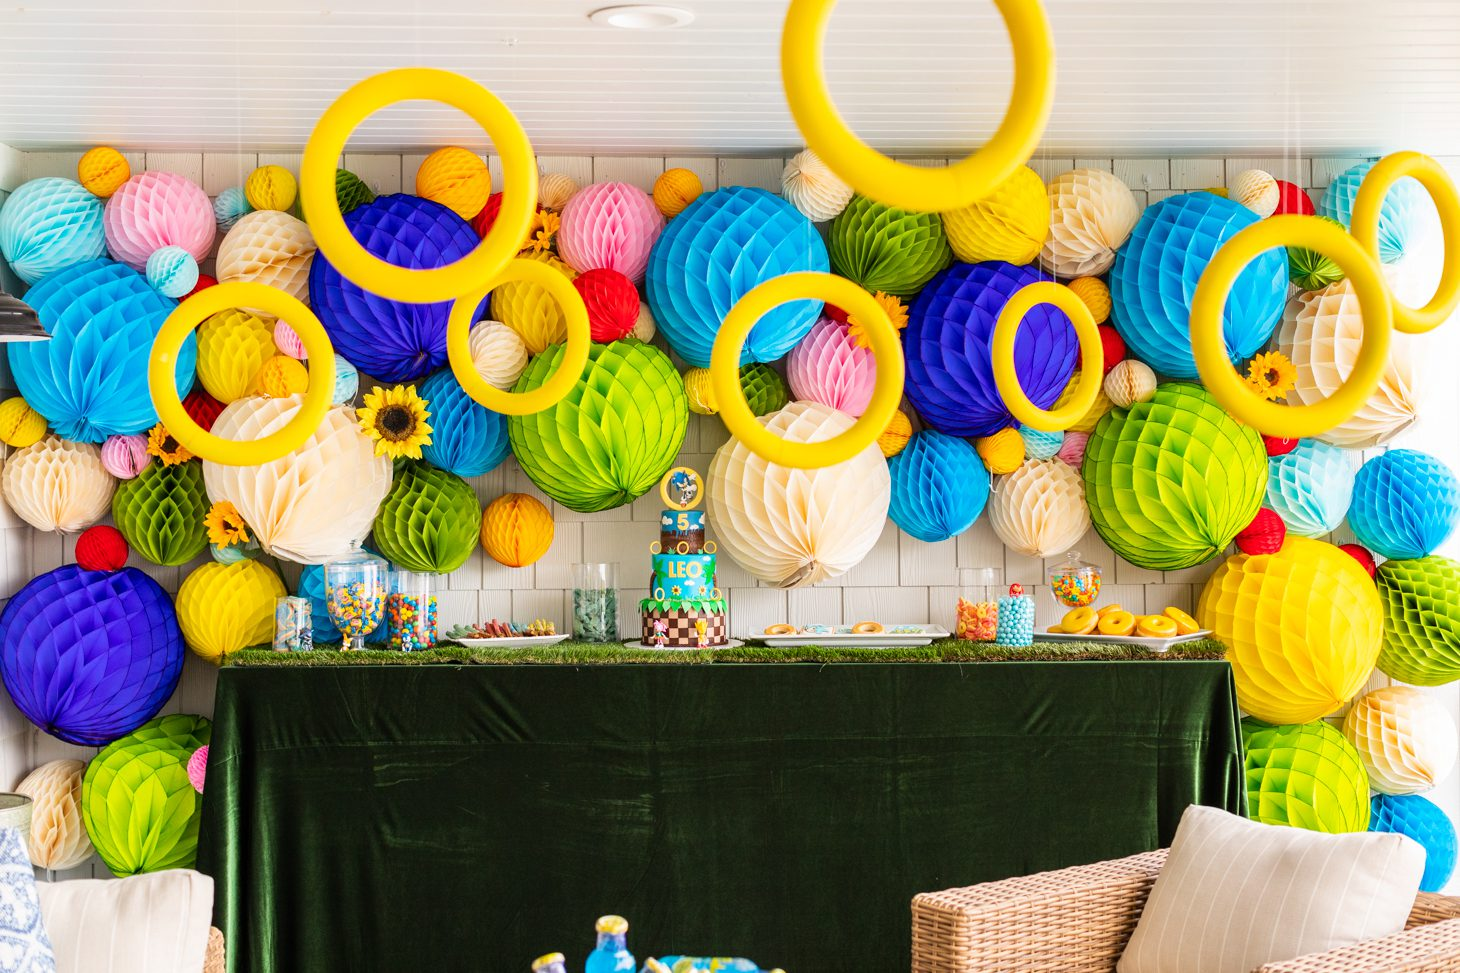 Sonic the Hedgehog themed party